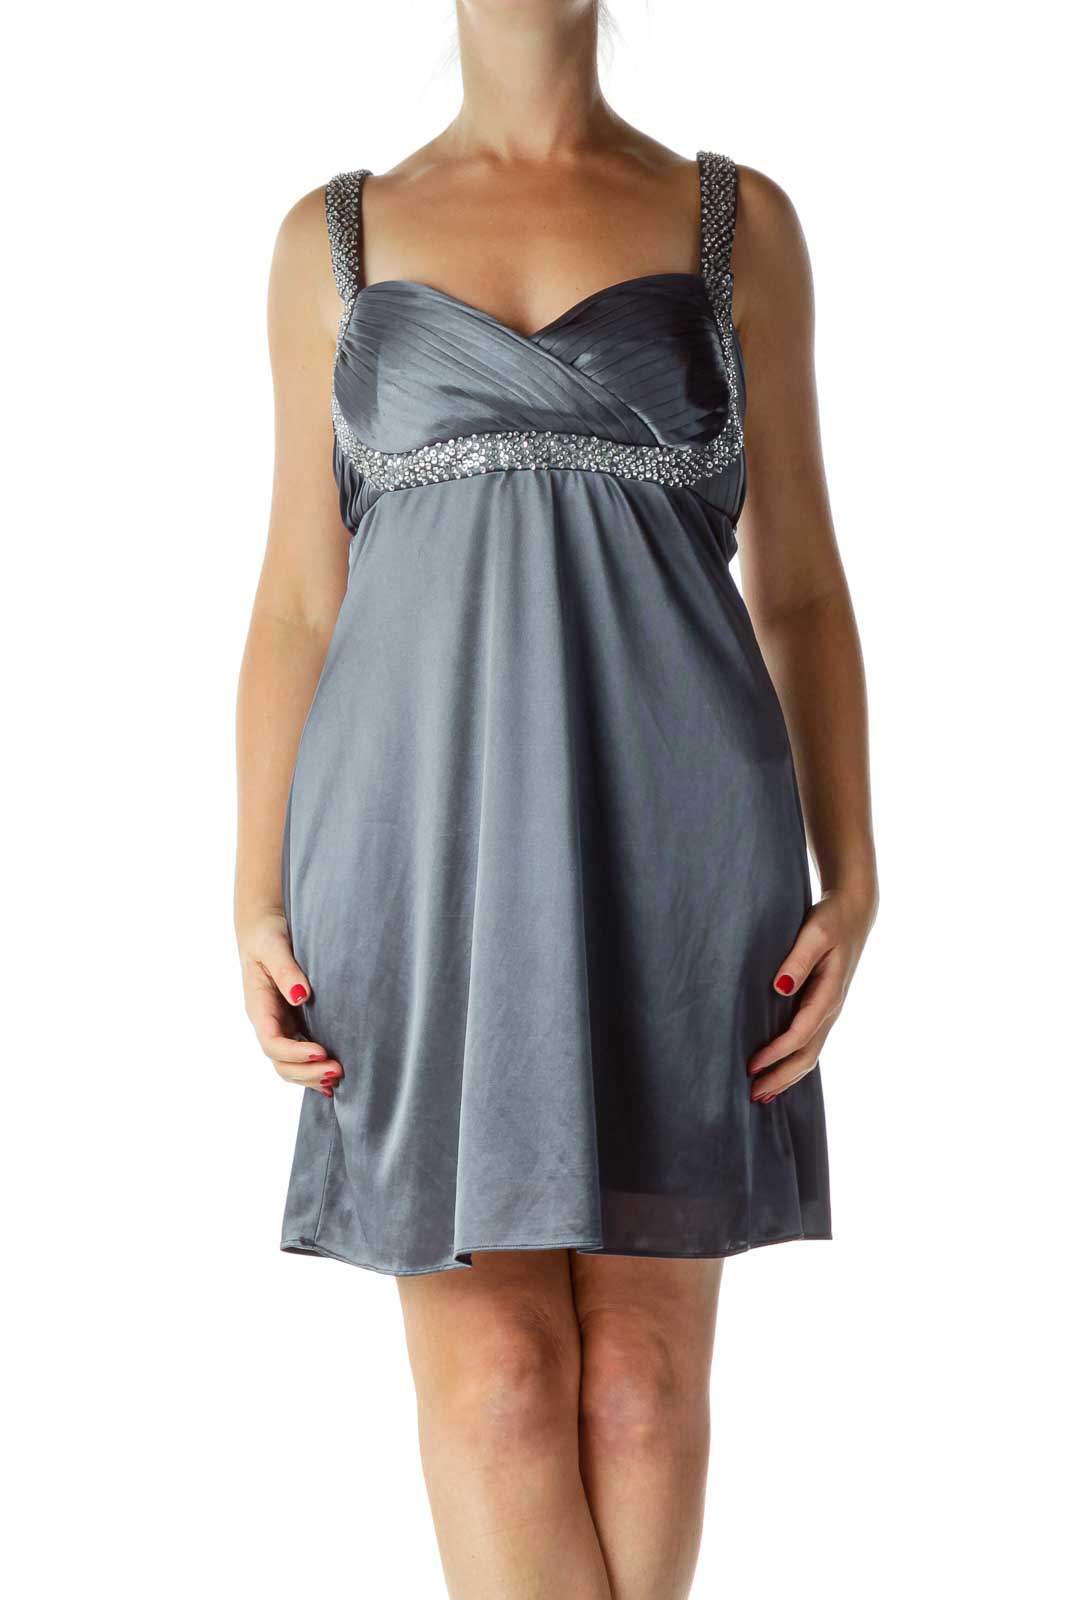 Gray Sequined Satin Cocktail Dress Front